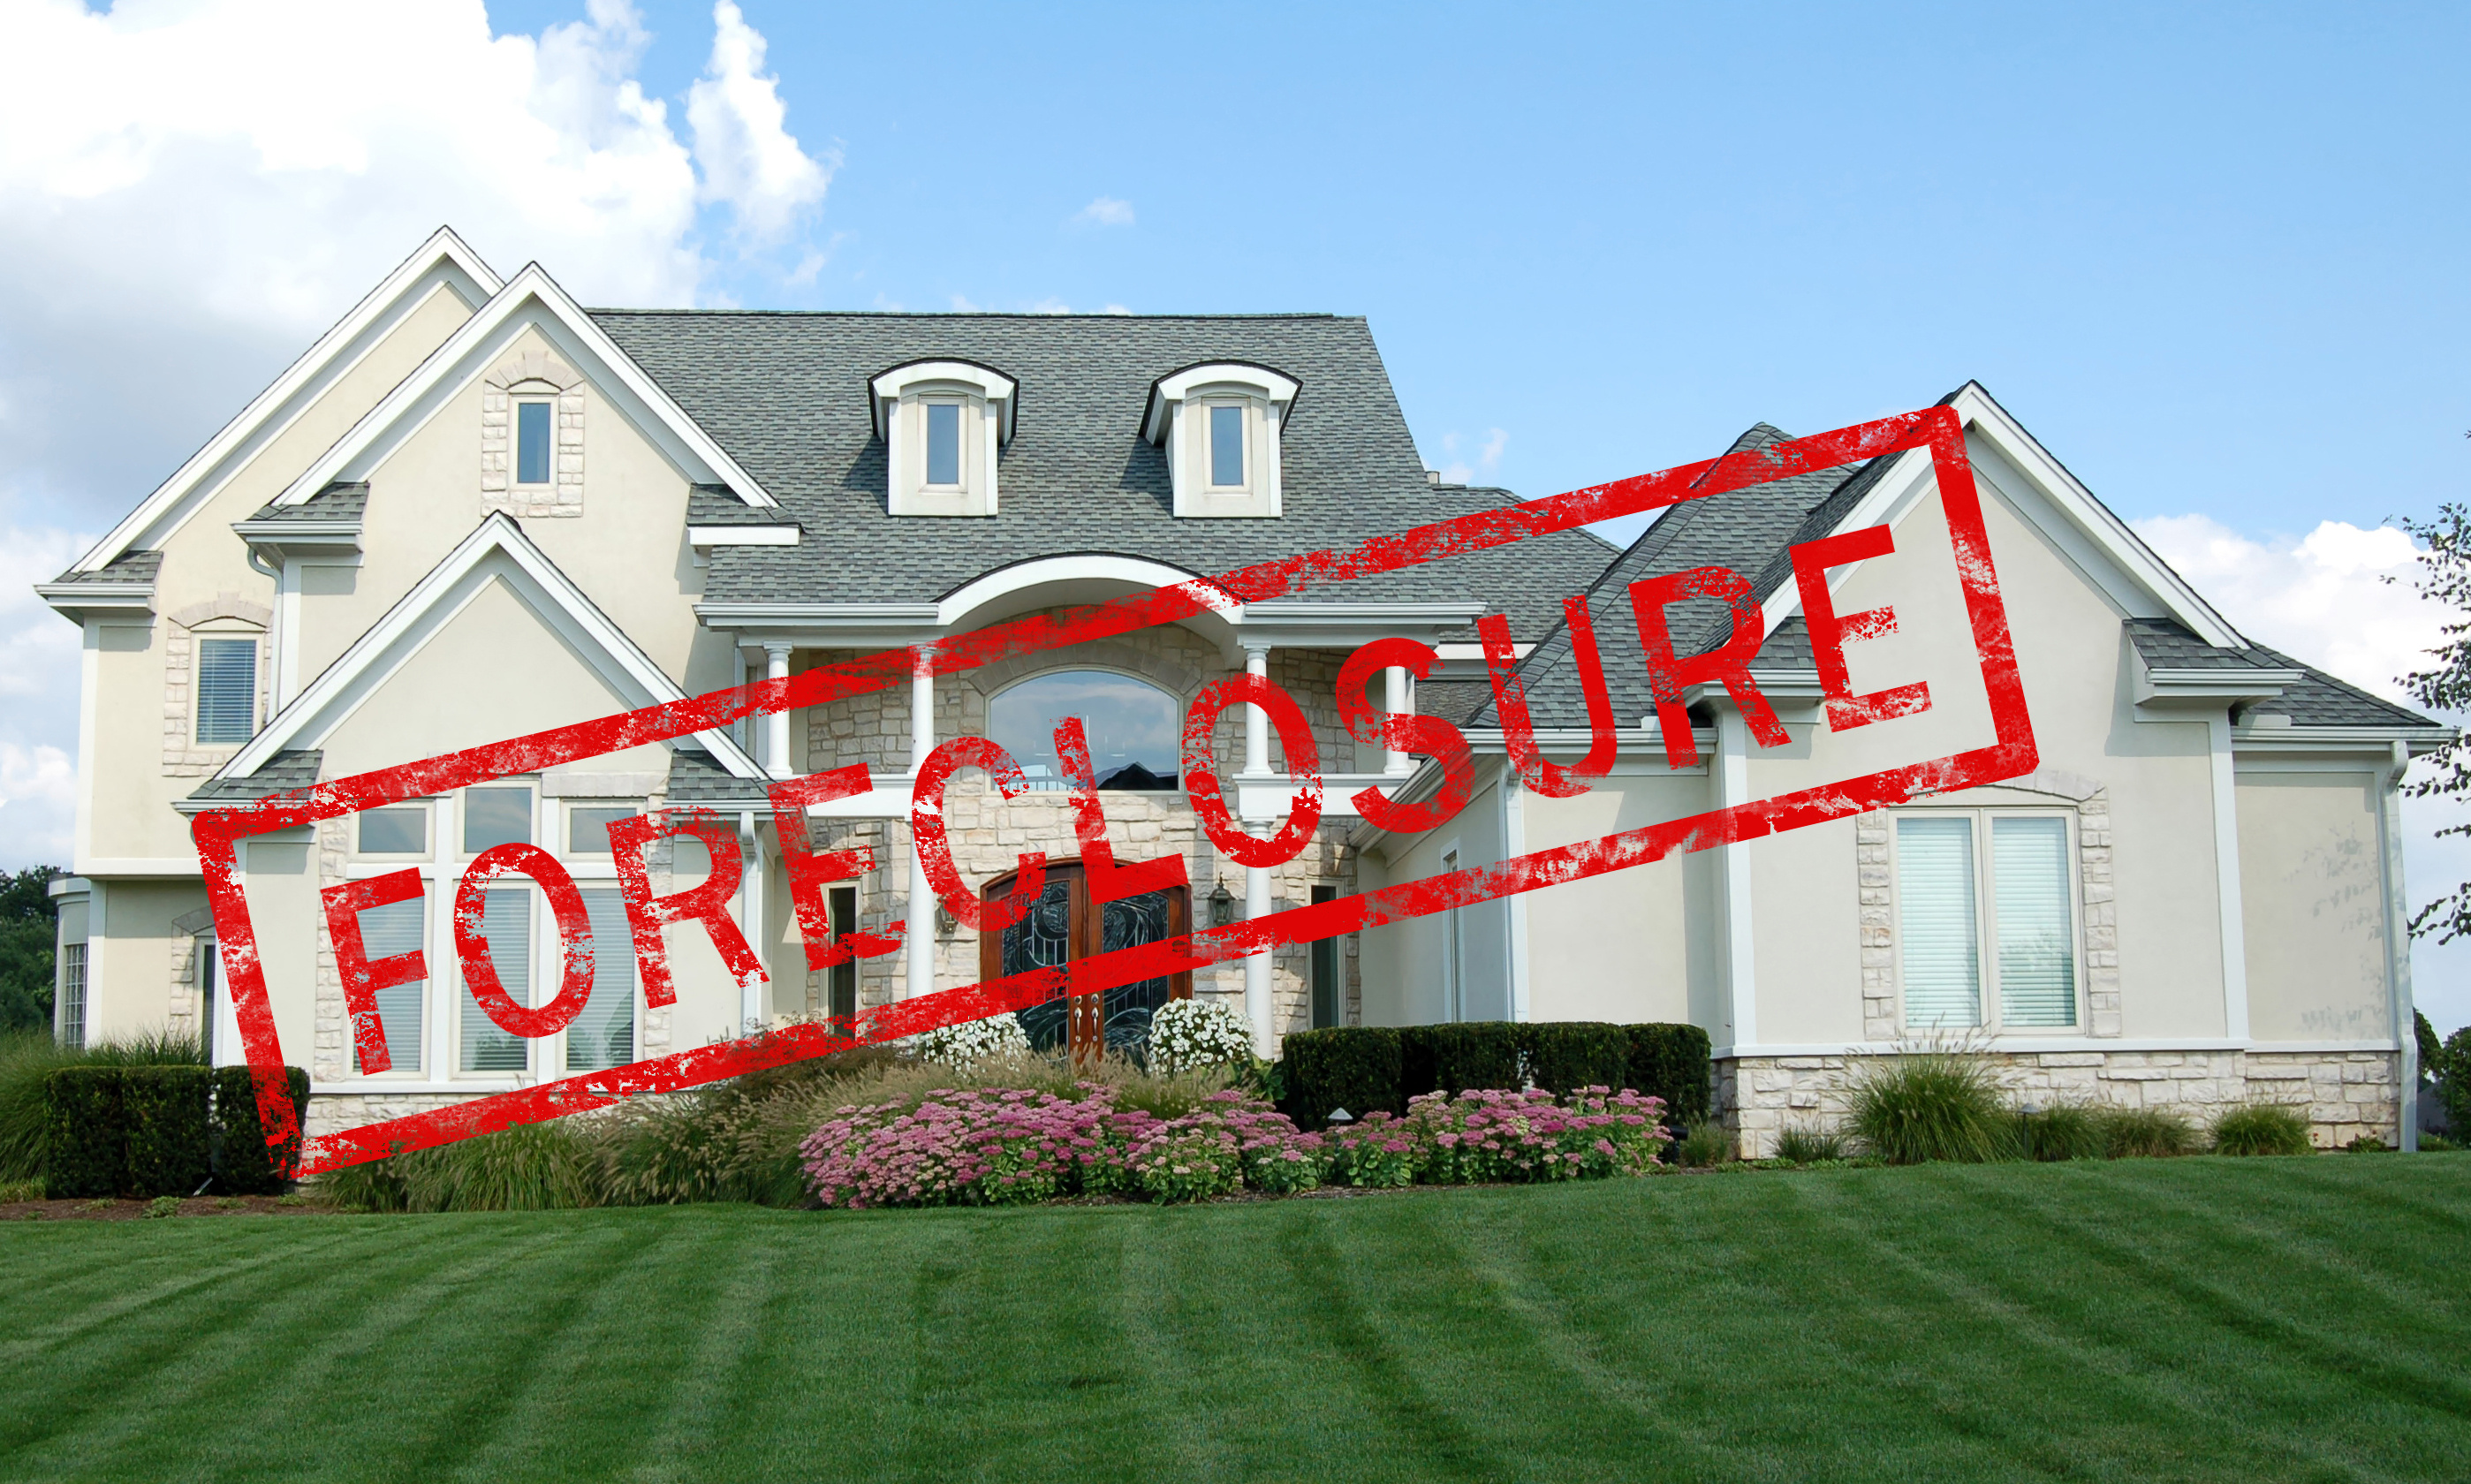 Call Brazos Valley Appraisals when you need appraisals regarding Brazos foreclosures